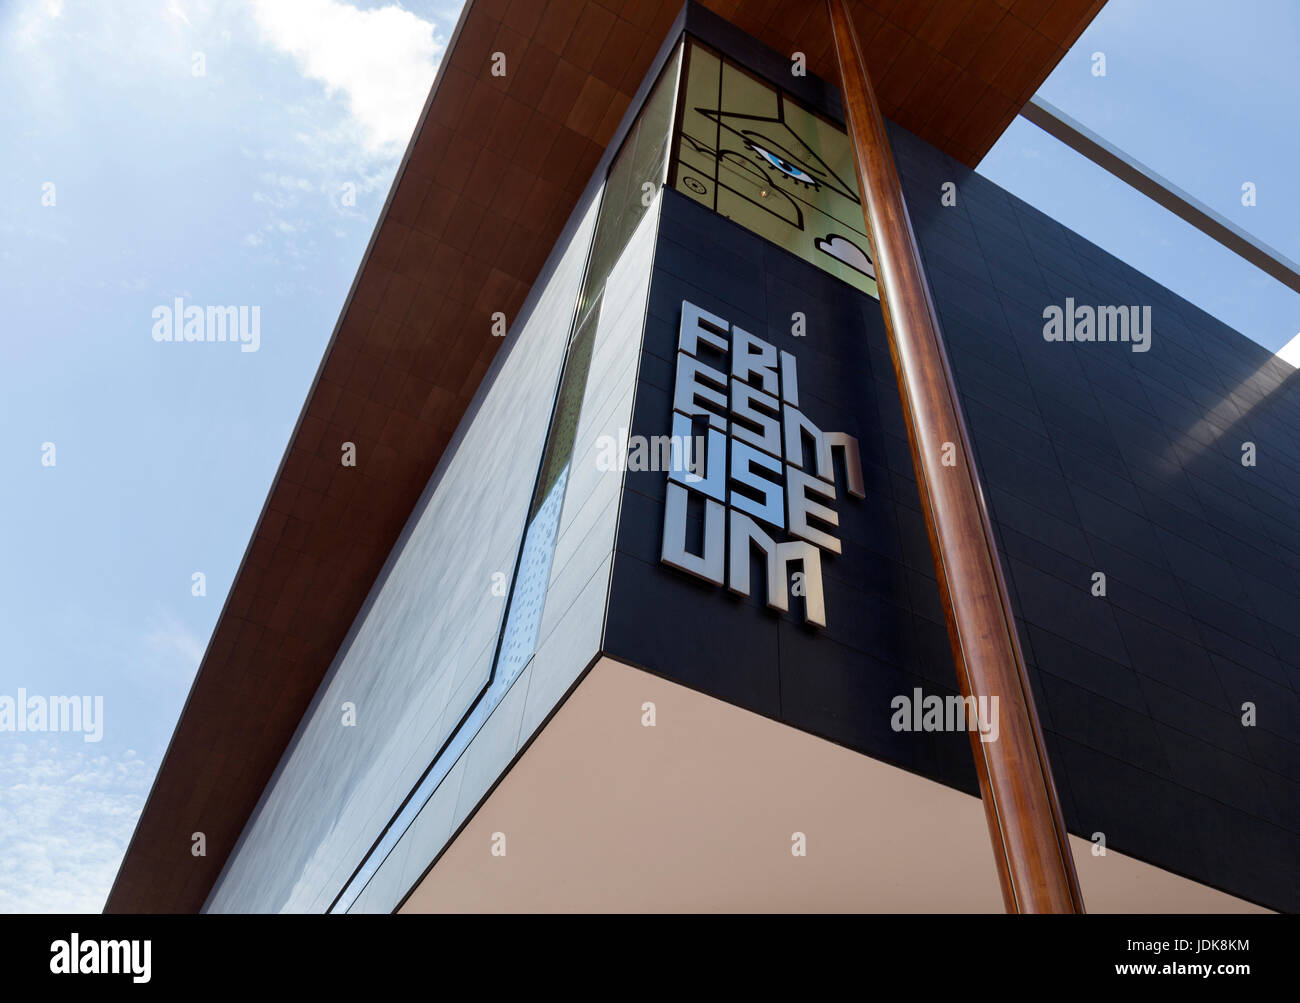 Leeuwarden, Netherlands, 11 june 2017: part of fries museum in leeuwarden with blue sky - Stock Image